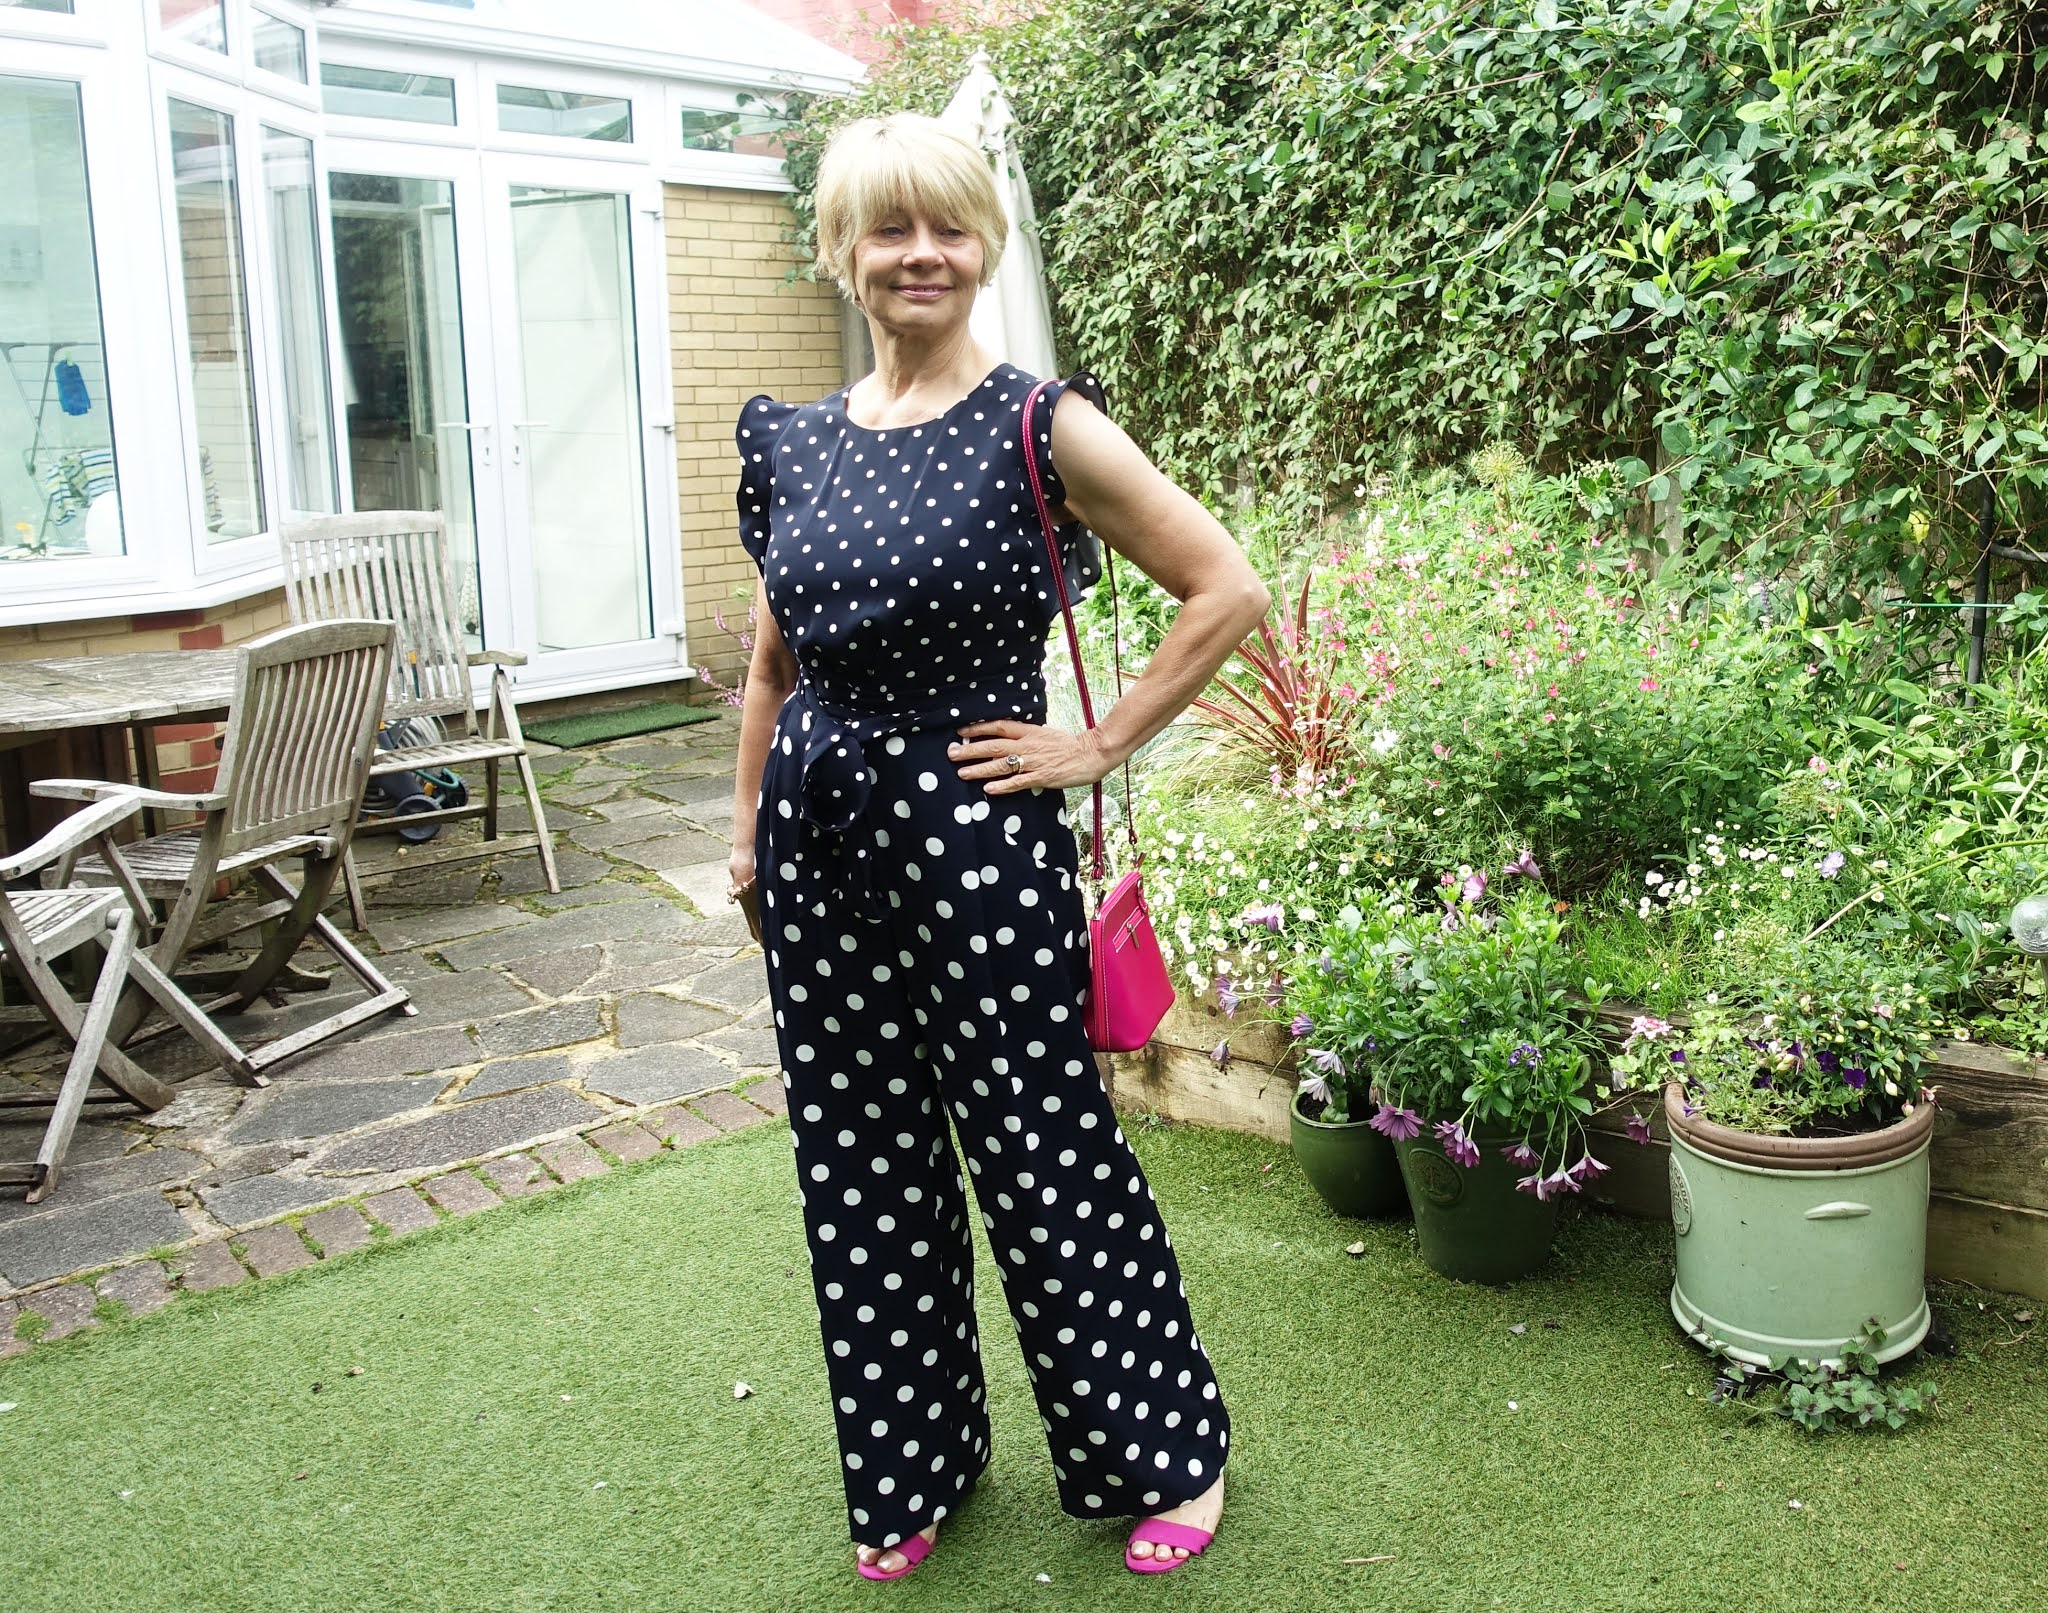 Over 50s blogger Gail Hanlon in navy and white polka dot jumpsuit and bright pink accessories